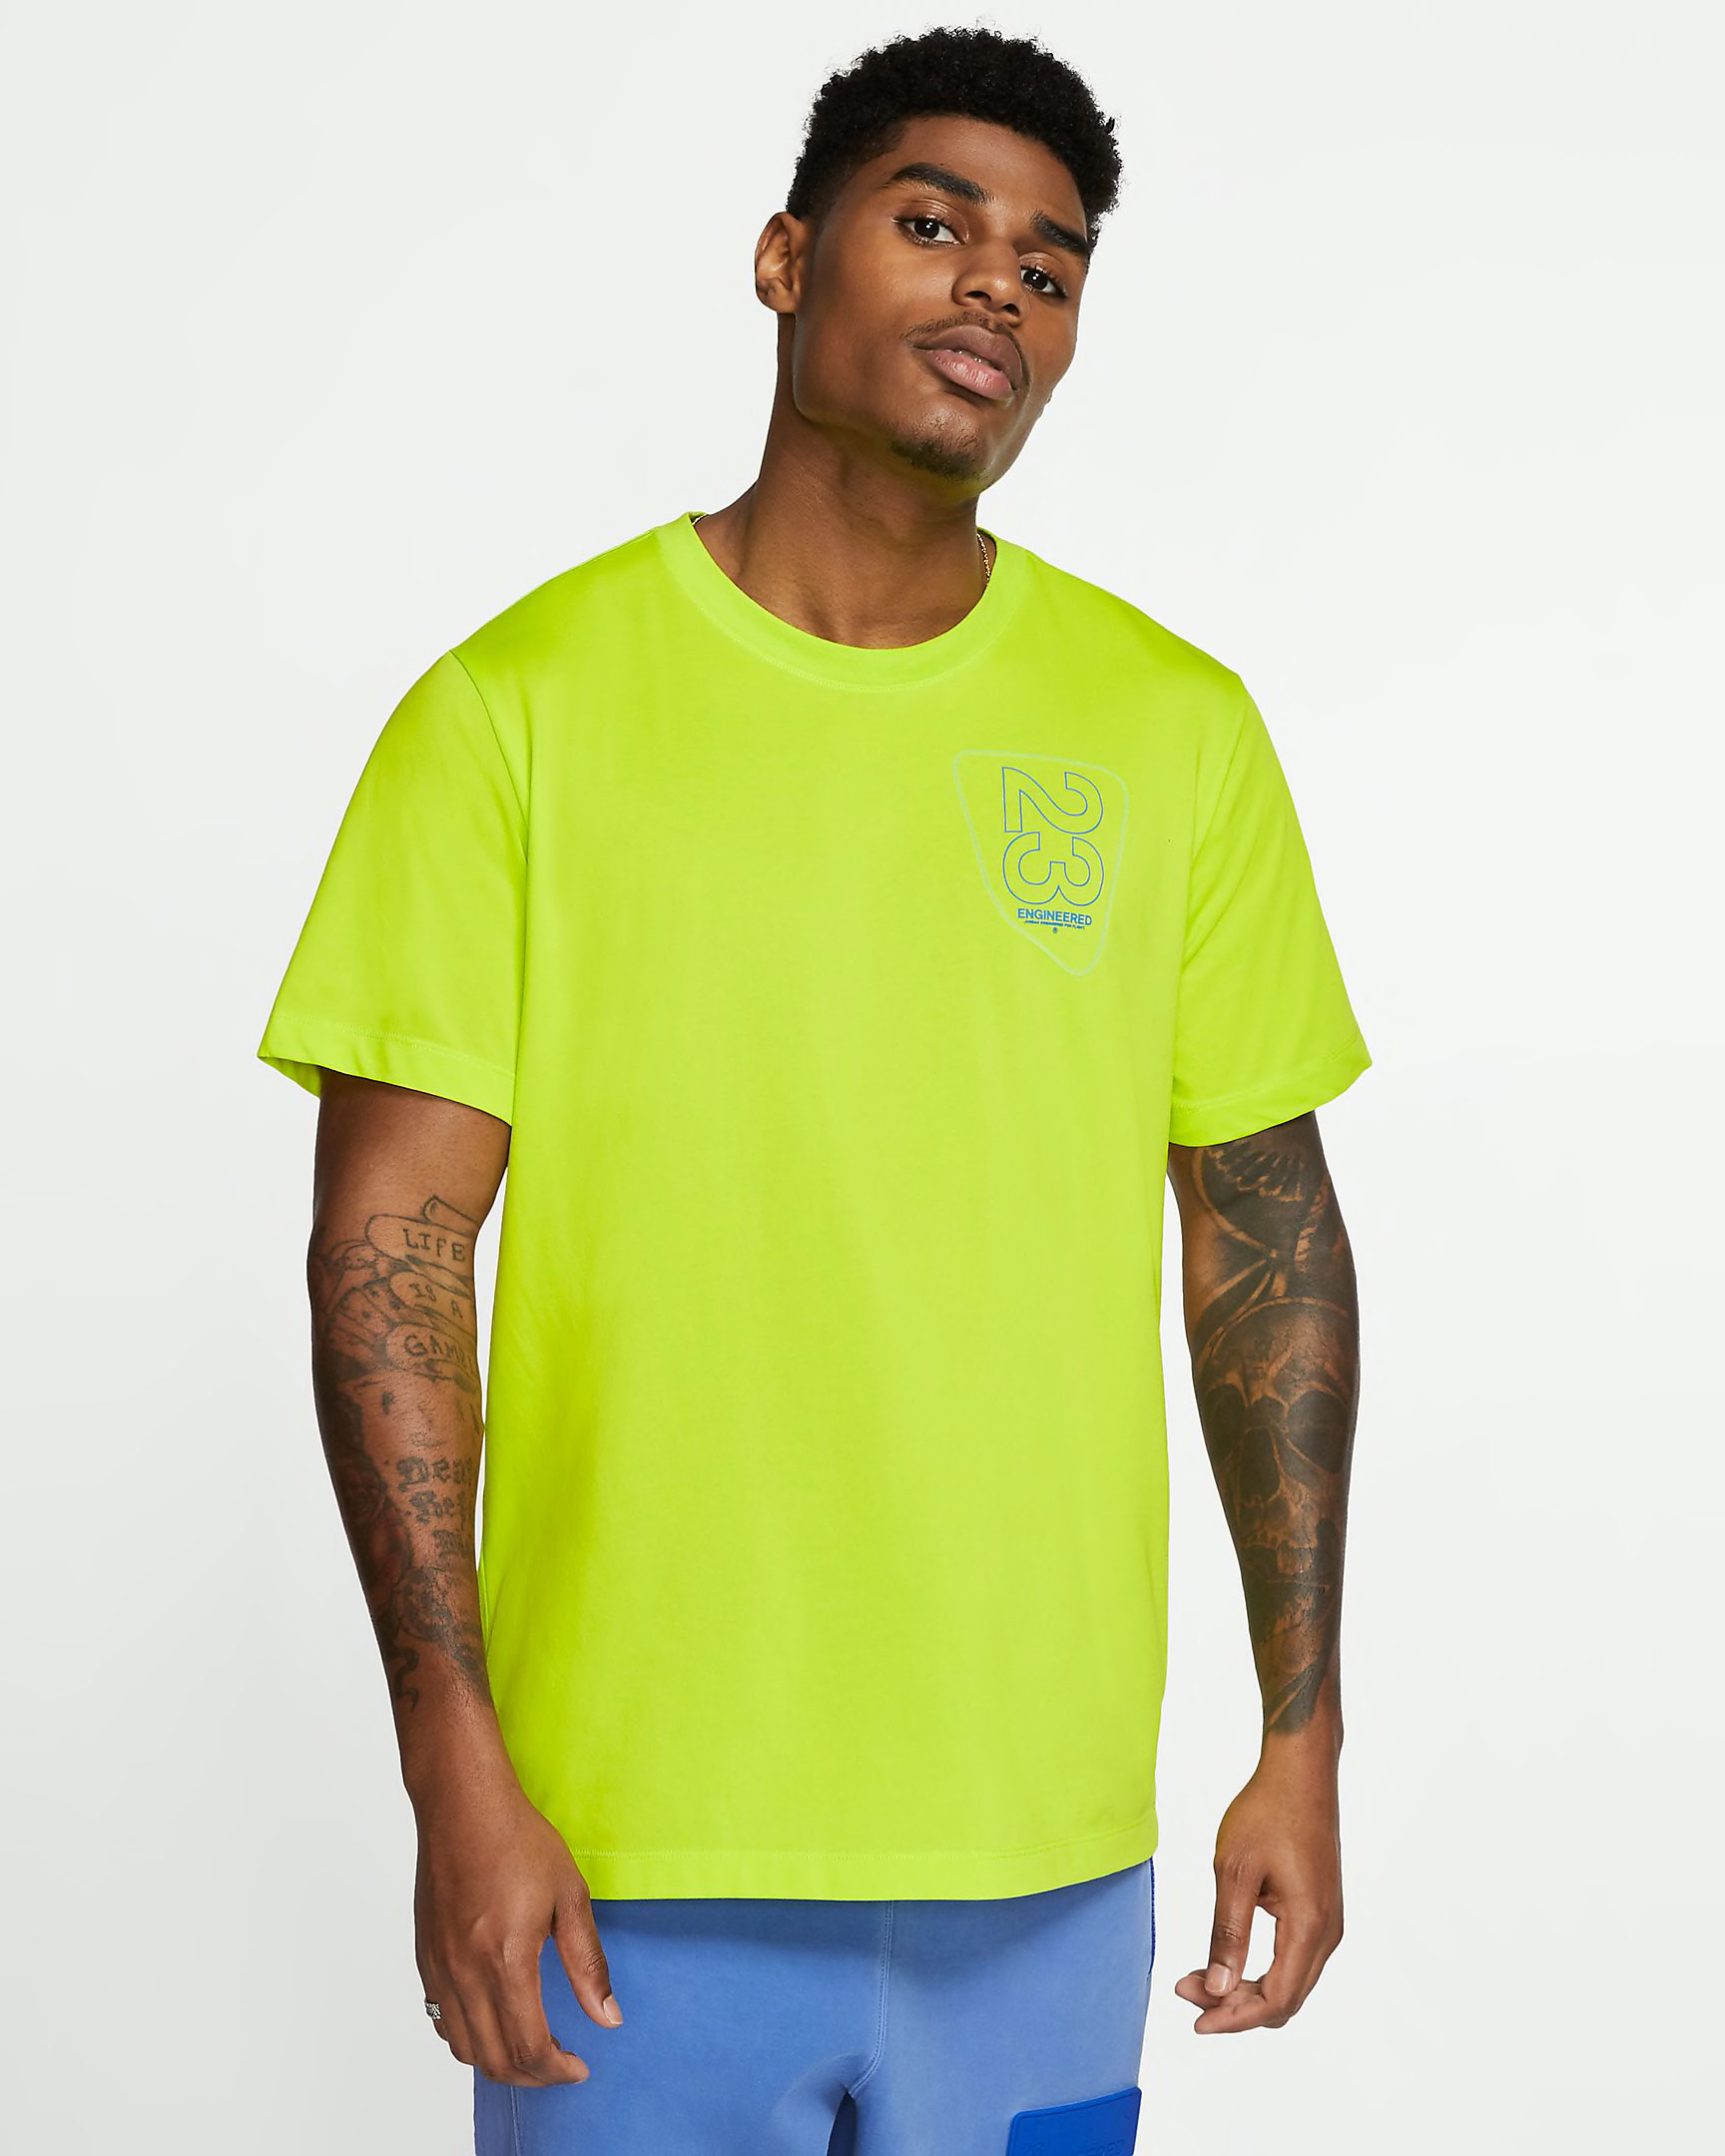 jordan-23-engineered-shirt-cyber-green-1